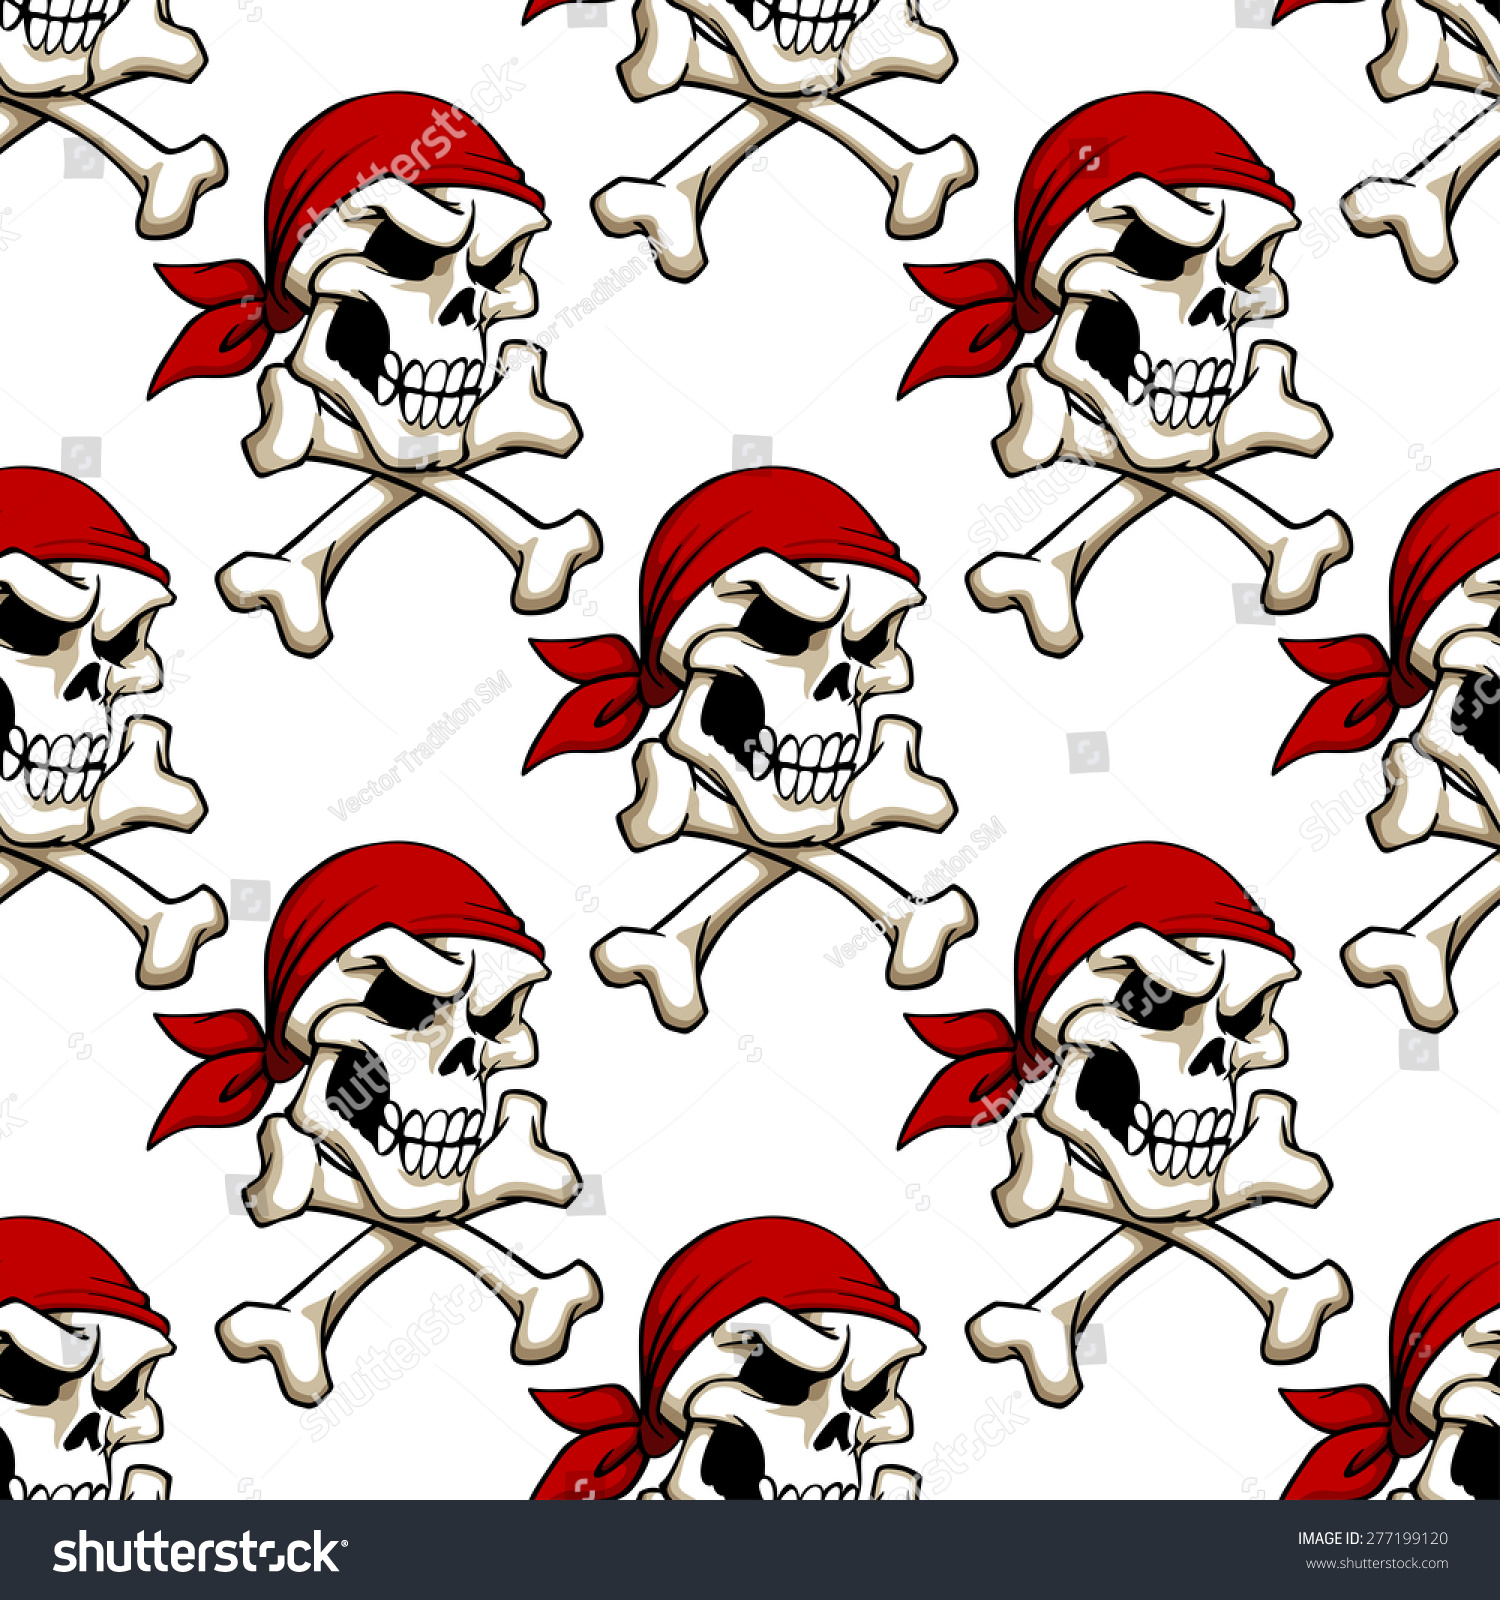 Pirate Skull With Crossbones In Red Bandana Seamless Pattern For Wallpaper Piracy Or Another Design